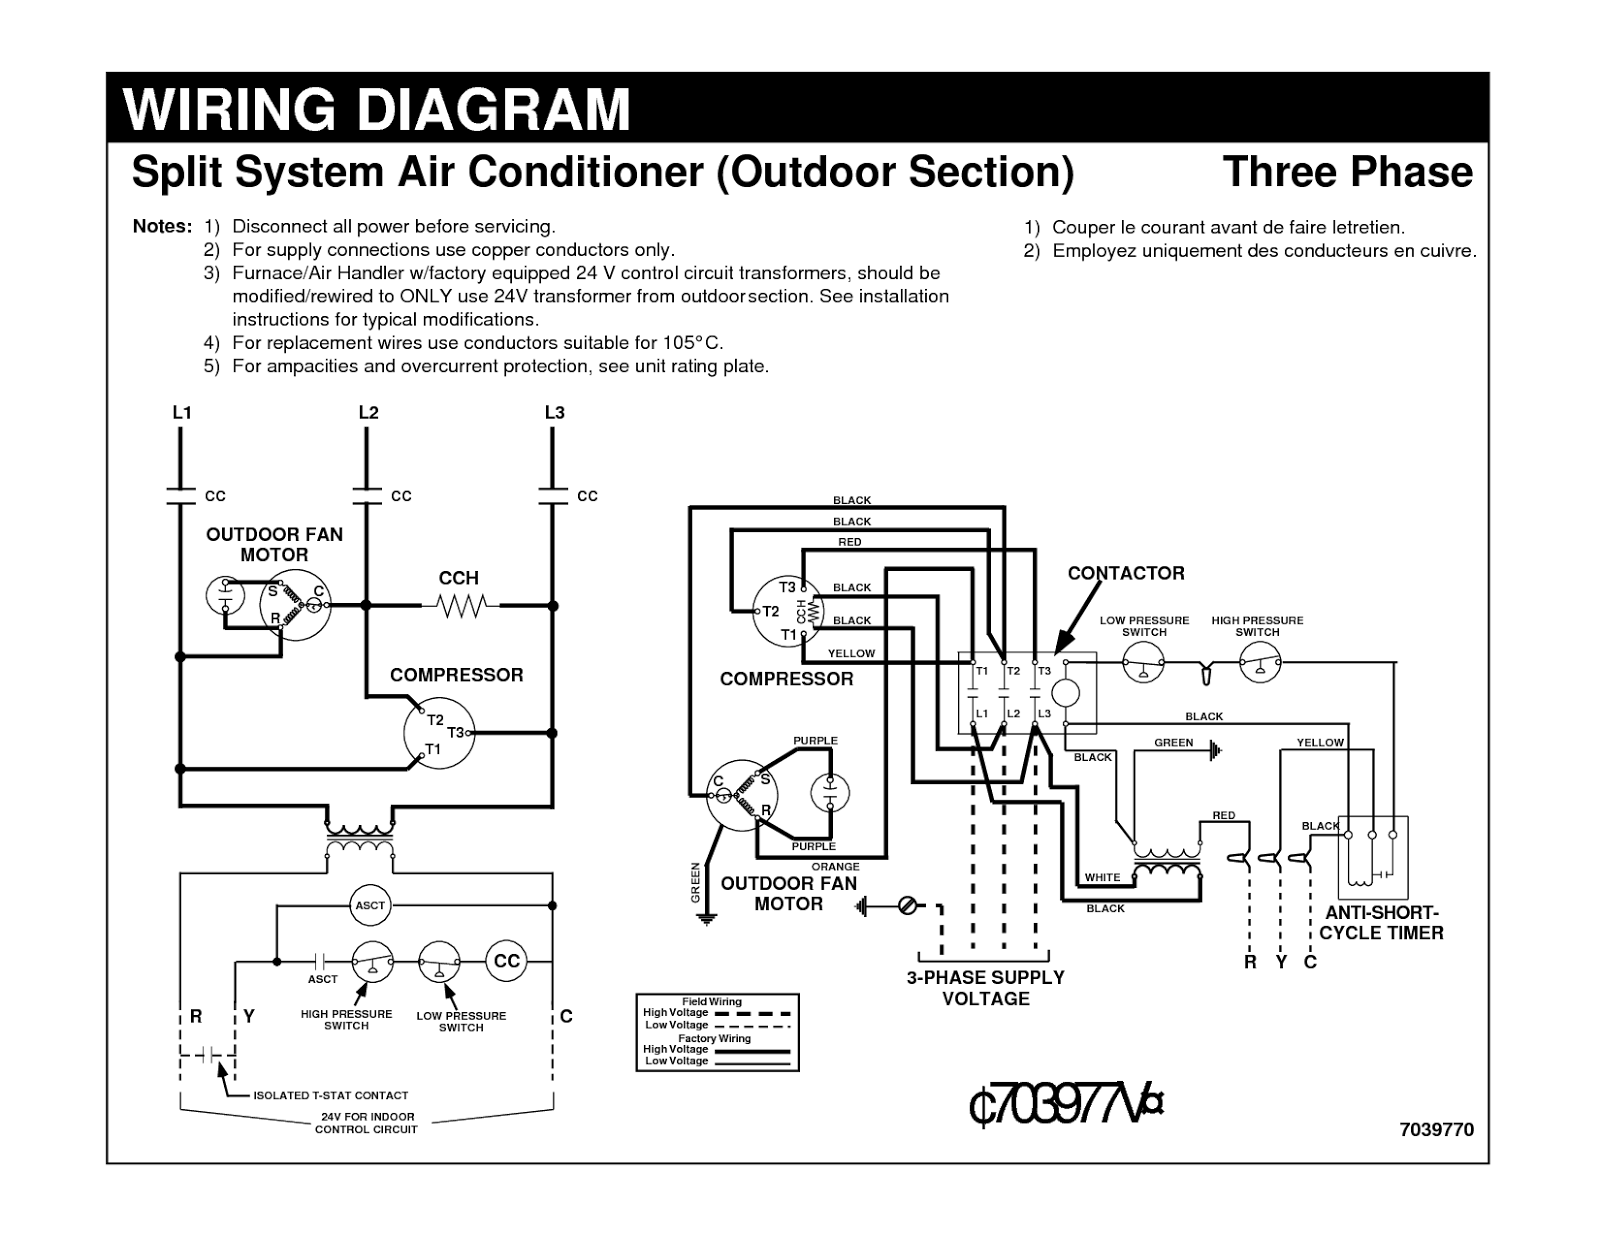 Electrical Wiring Diagrams for Air Conditioning Systems – Part One ~  Electrical Knowhow